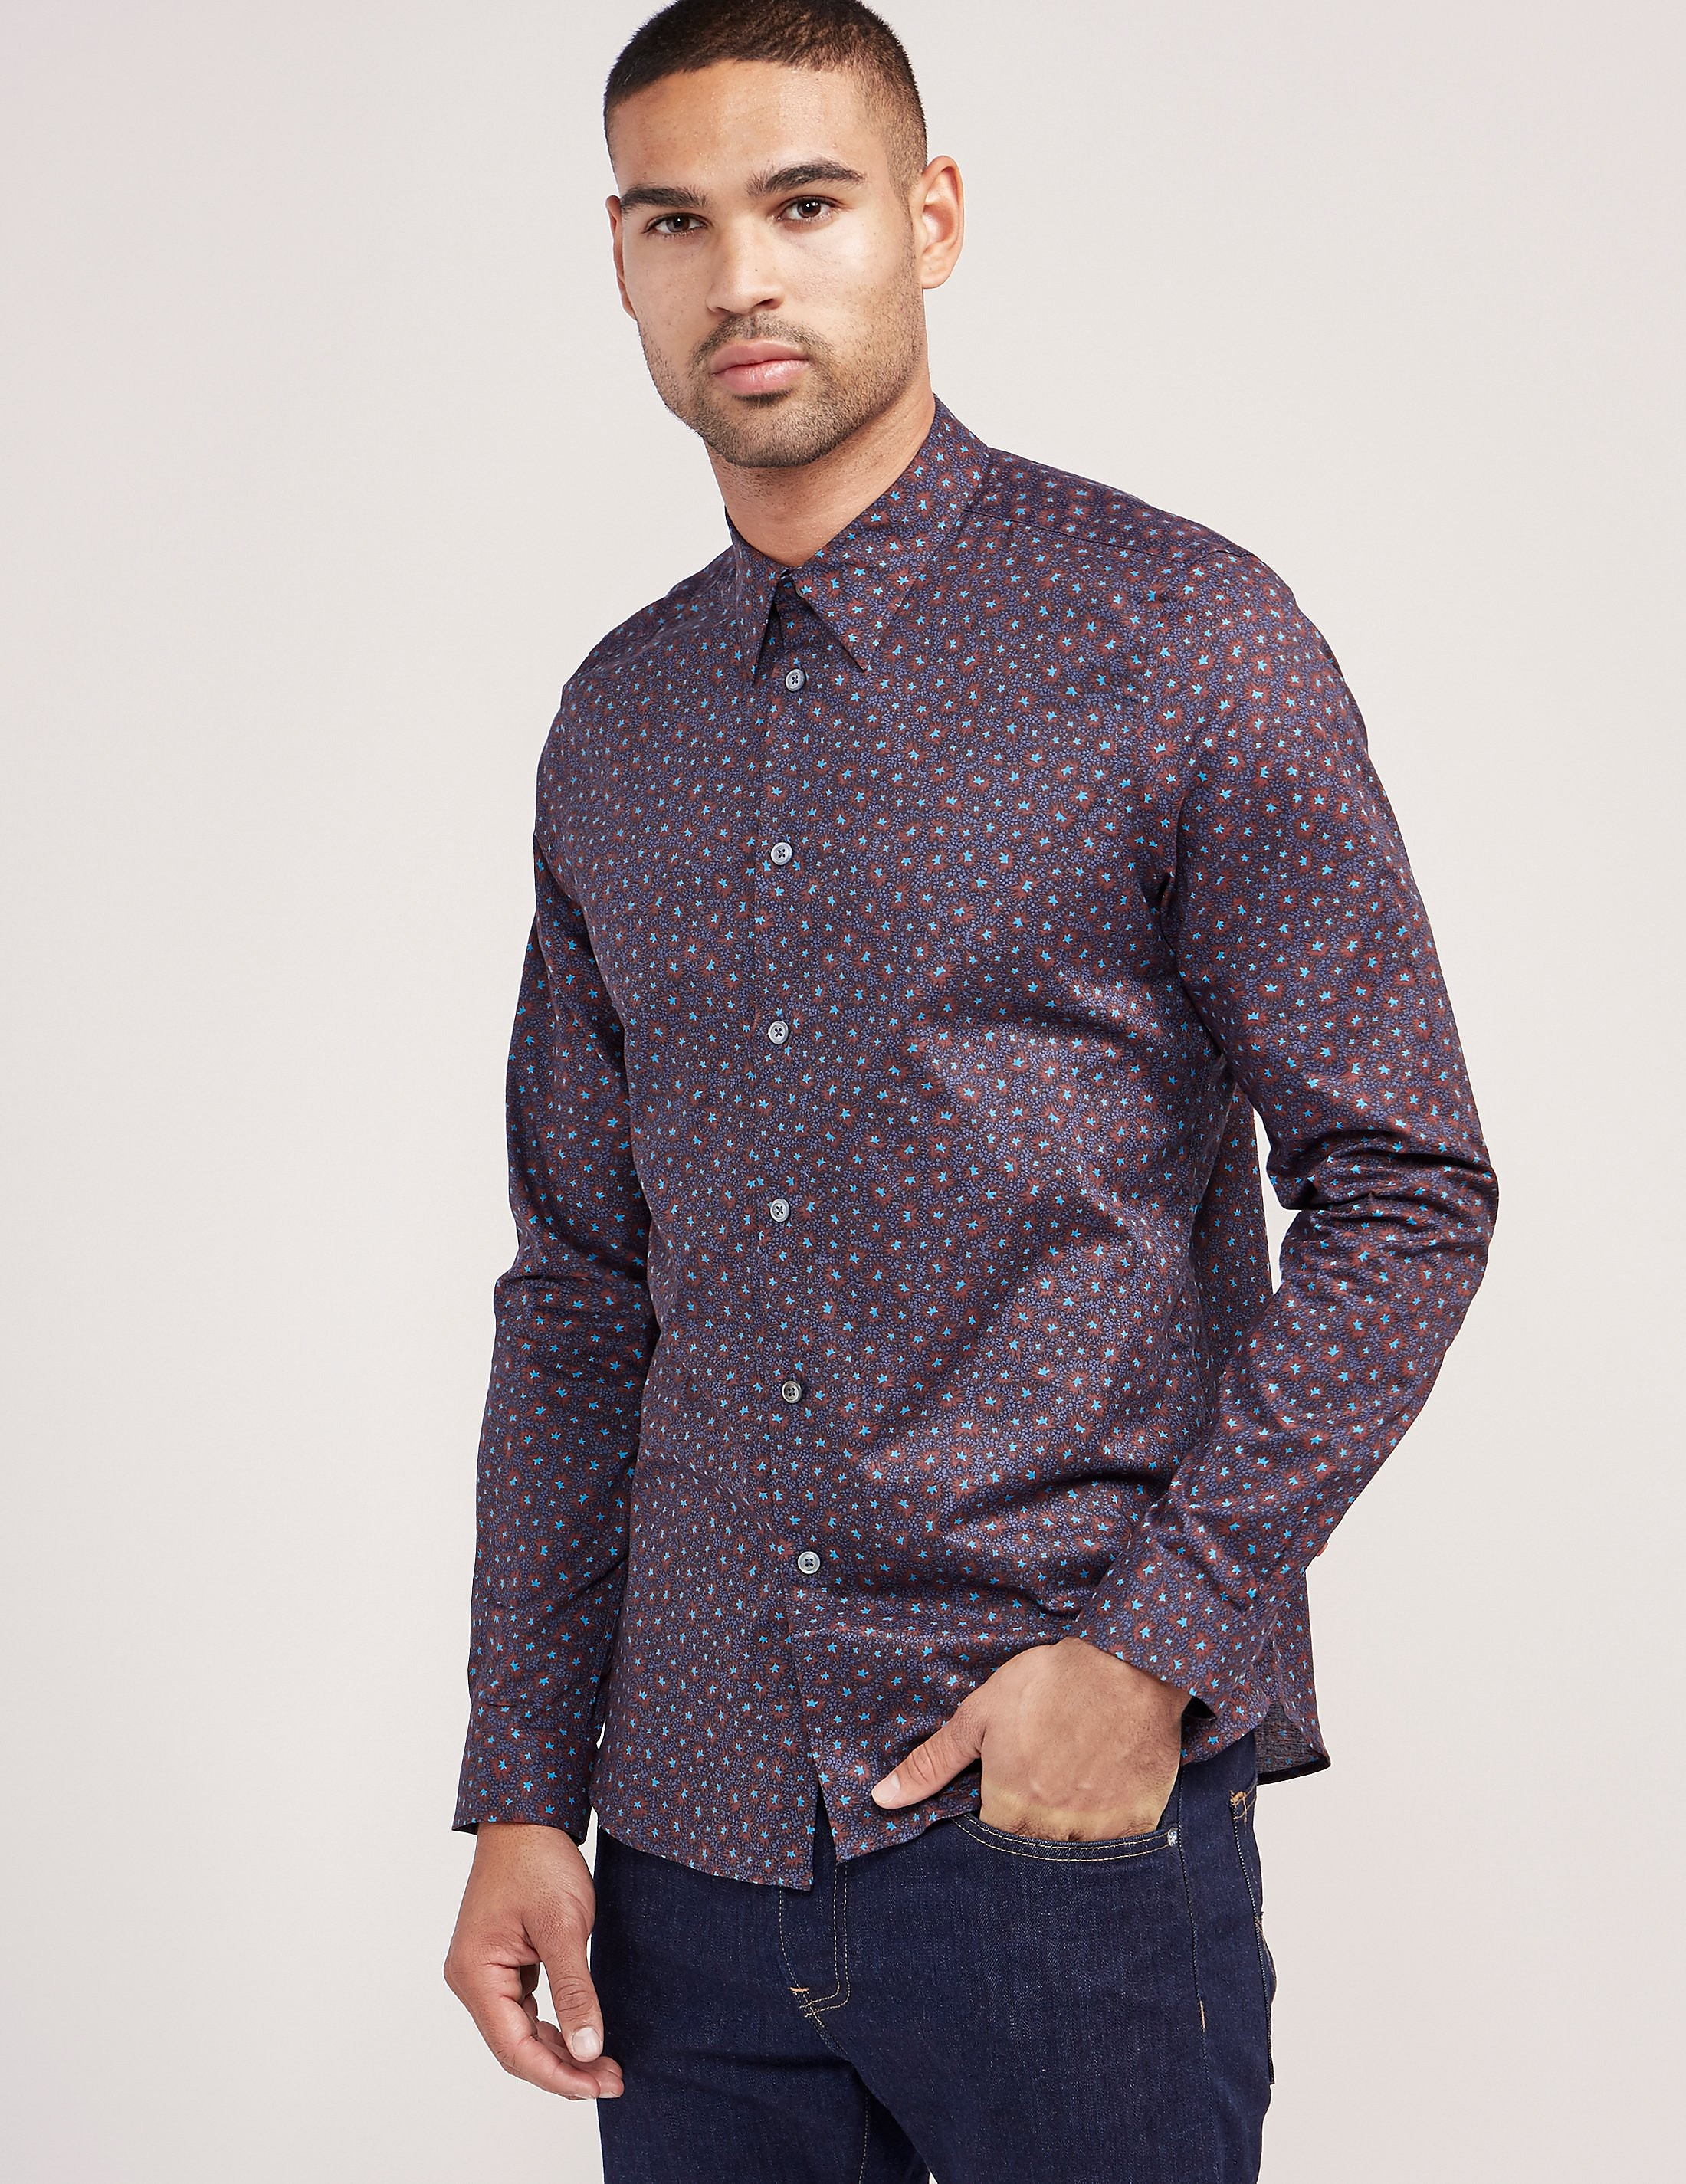 Paul Smith Starburst Print Long Sleeve Shirt